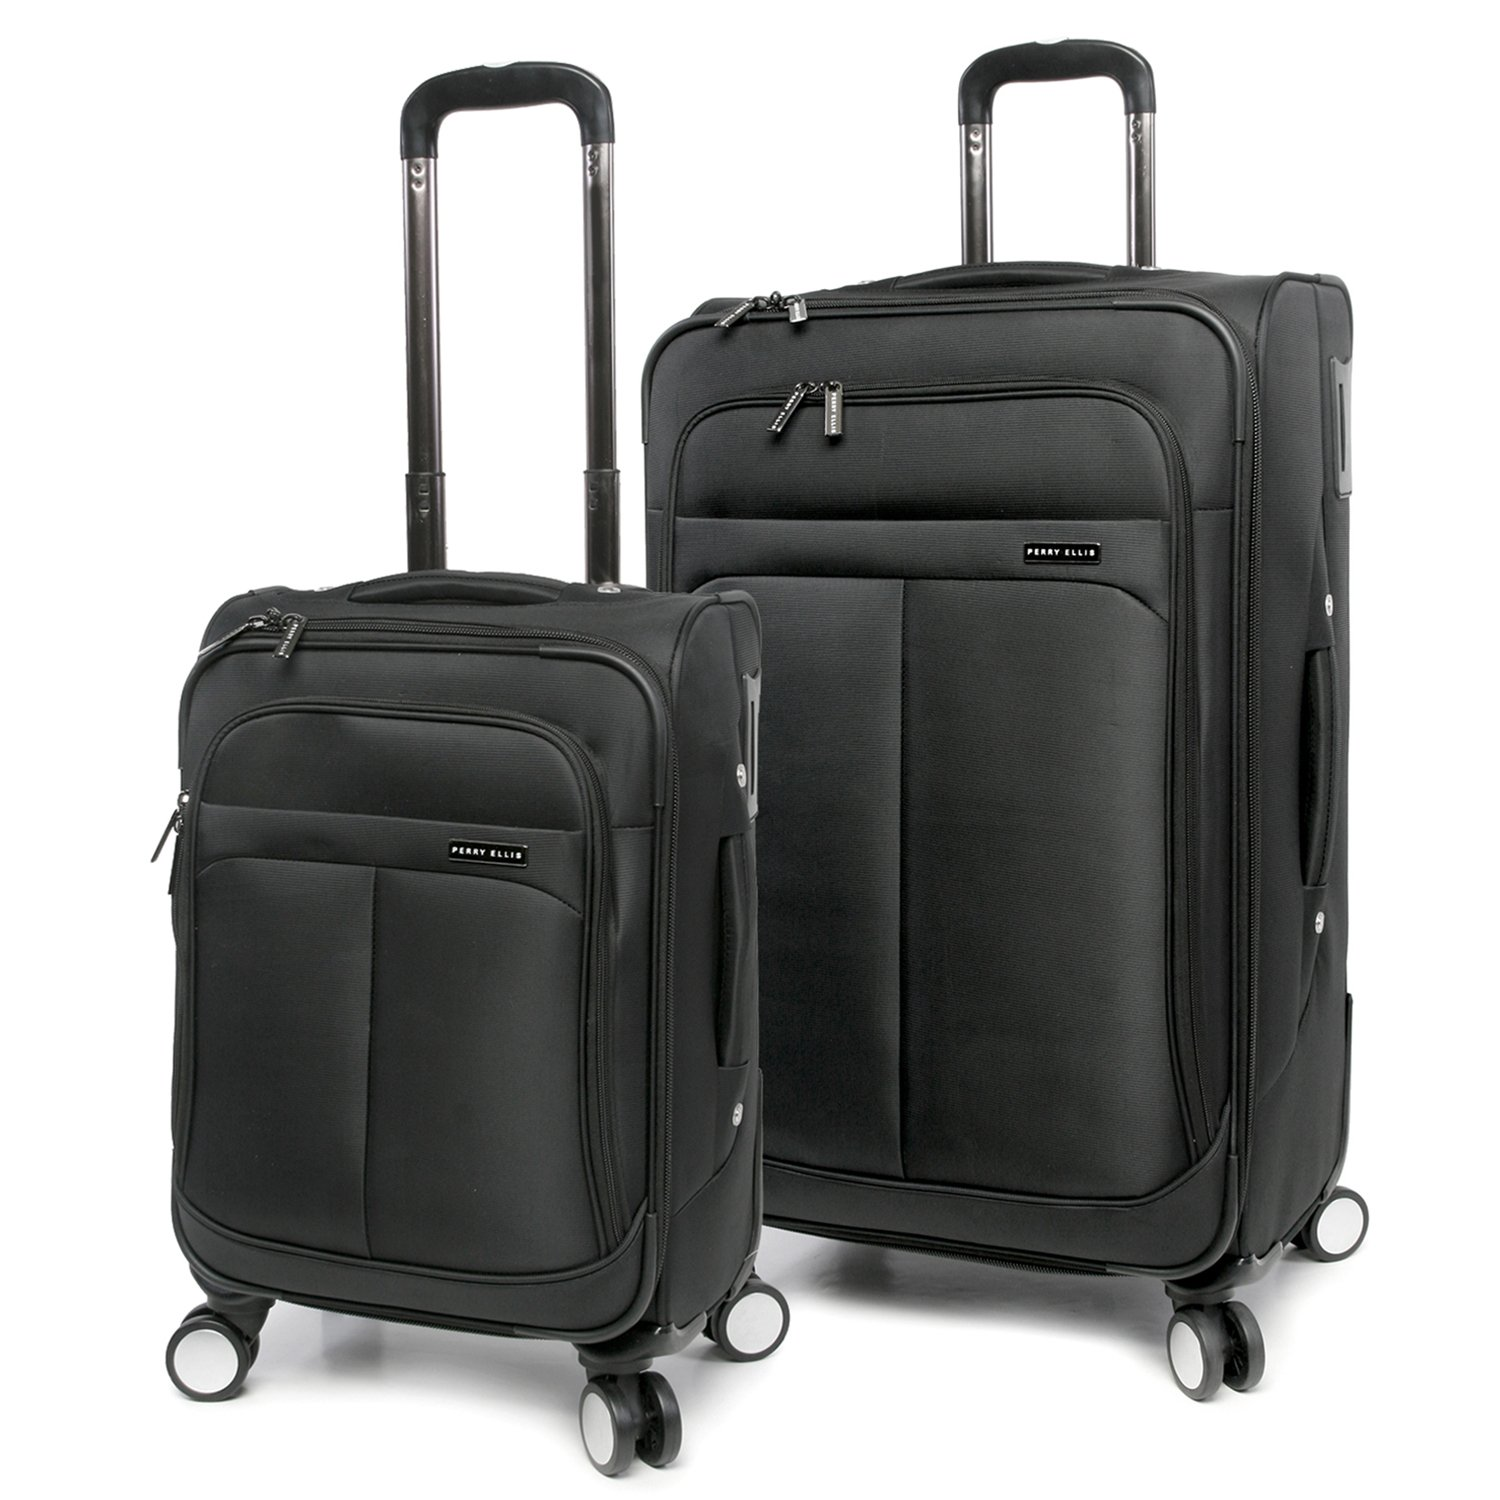 Luggage Prodigy 2 Piece Set Expandable Suitcase with Spinner Wheels